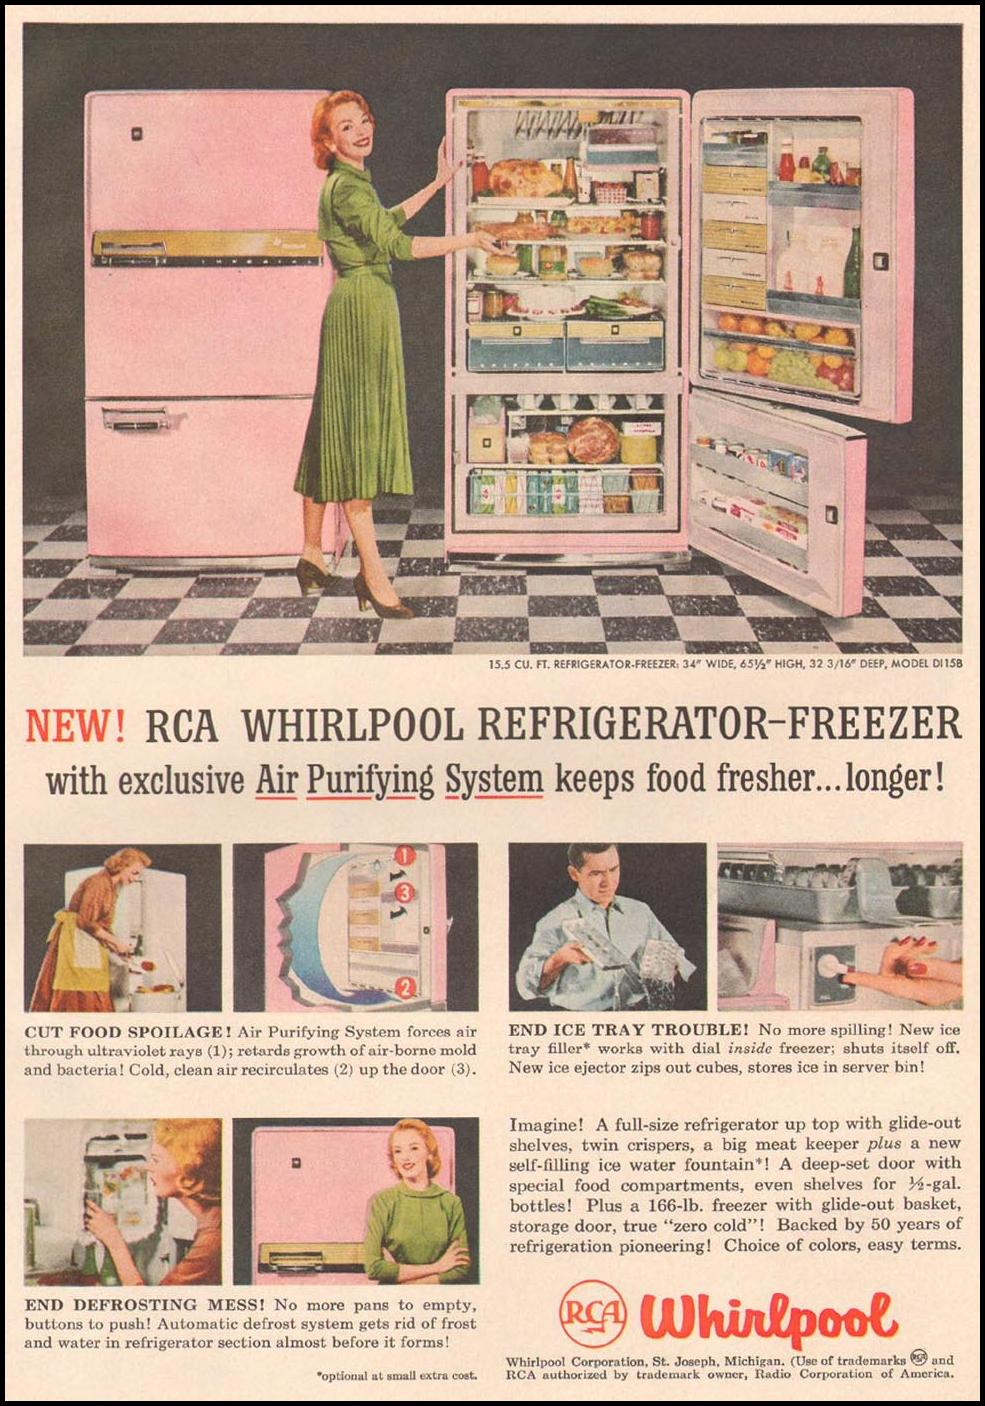 RCA WHIRLPOOL REFRIGERATOR-FREEZER GOOD HOUSEKEEPING 05/01/1957 p. 171